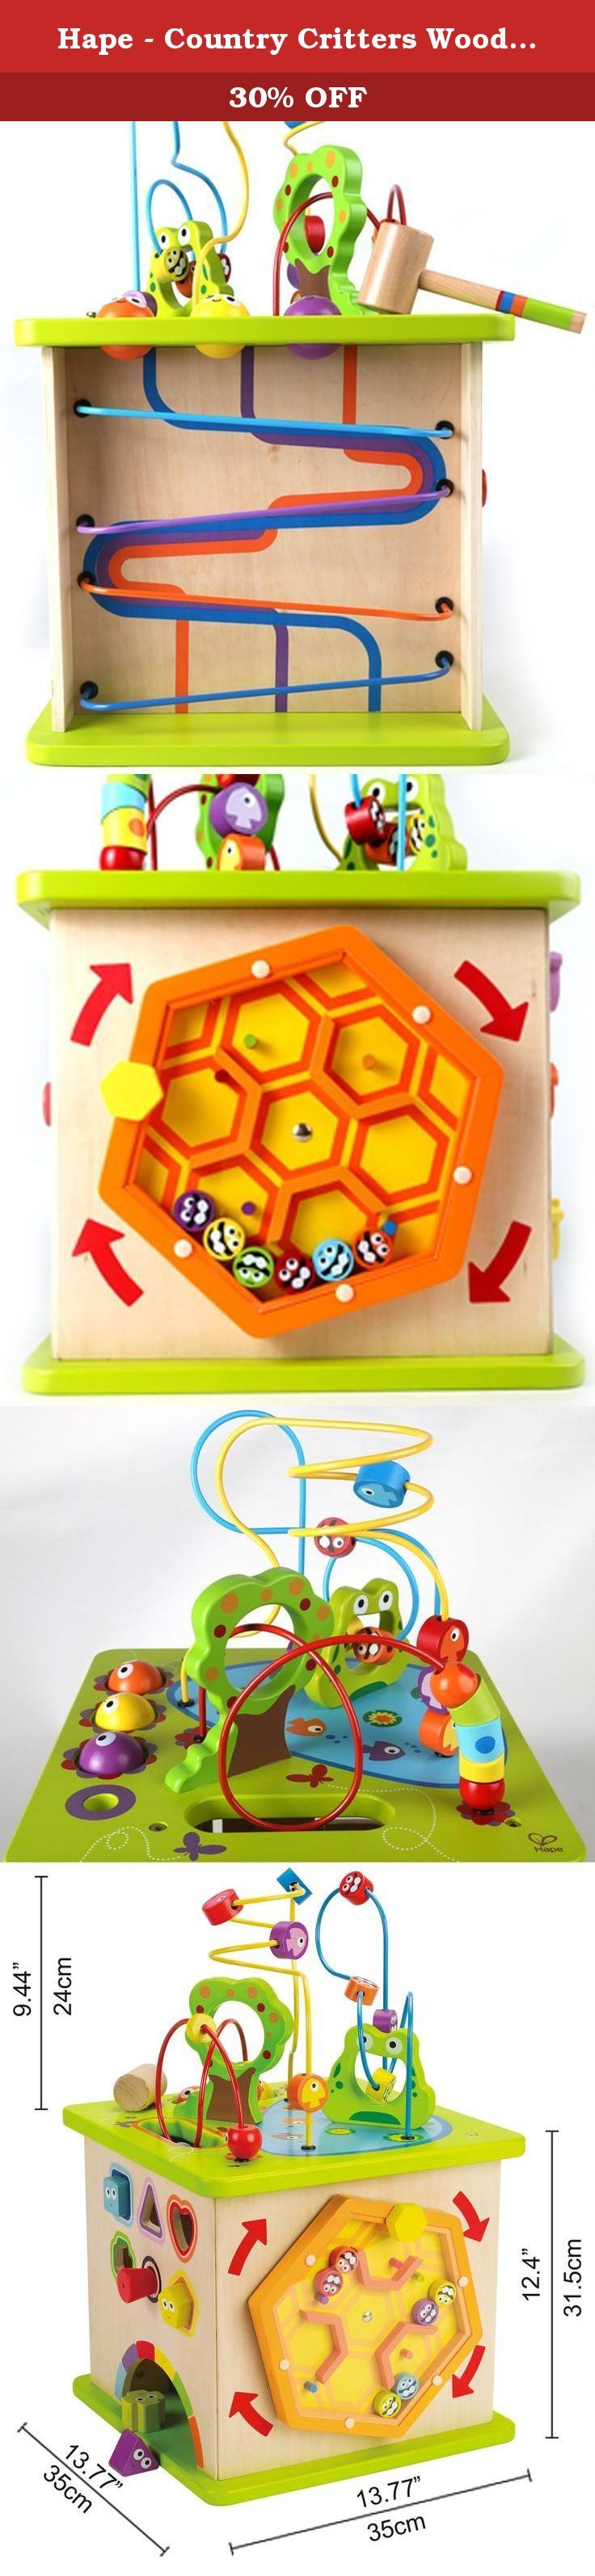 Hape - Country Critters Wooden Activity Play Cube. Fight boredom with five sides of fun activites! The Country Critters Play Cube features a shape sorting puzzle, a ball roller coaster, rotating maze and a tracking panel, all topped with a brightly-colored, unique floating wire maze to provide children hours of entertainment. All of the shapes and animals are adorably painted with large, animated eyes that are sure to delight. Encourages imaginative thinking, and the development of...